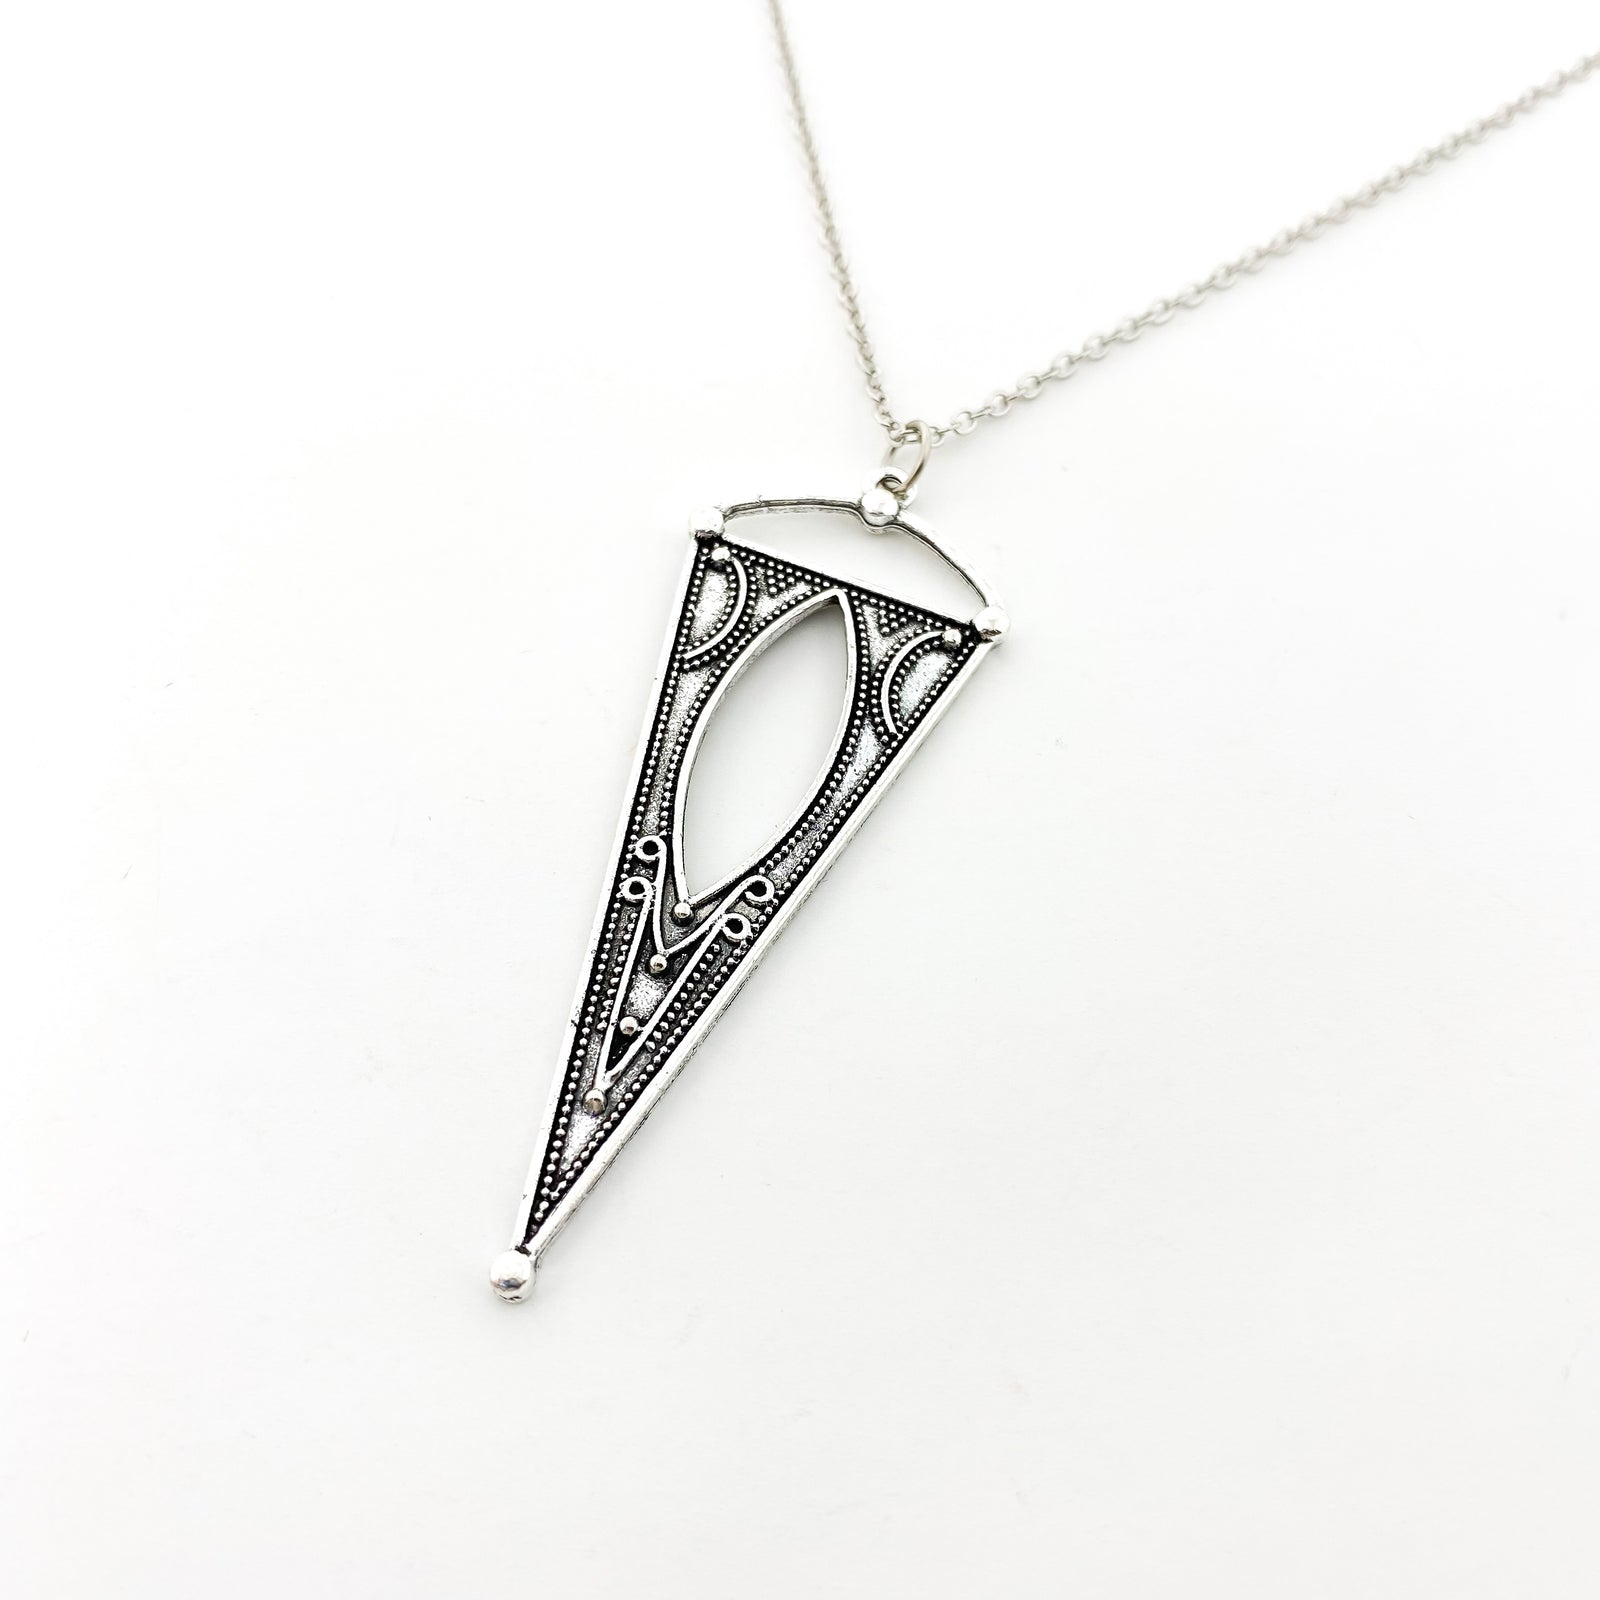 PATTERNED LARGE INVERTED TRIANGLE NECKLACE | SILVER